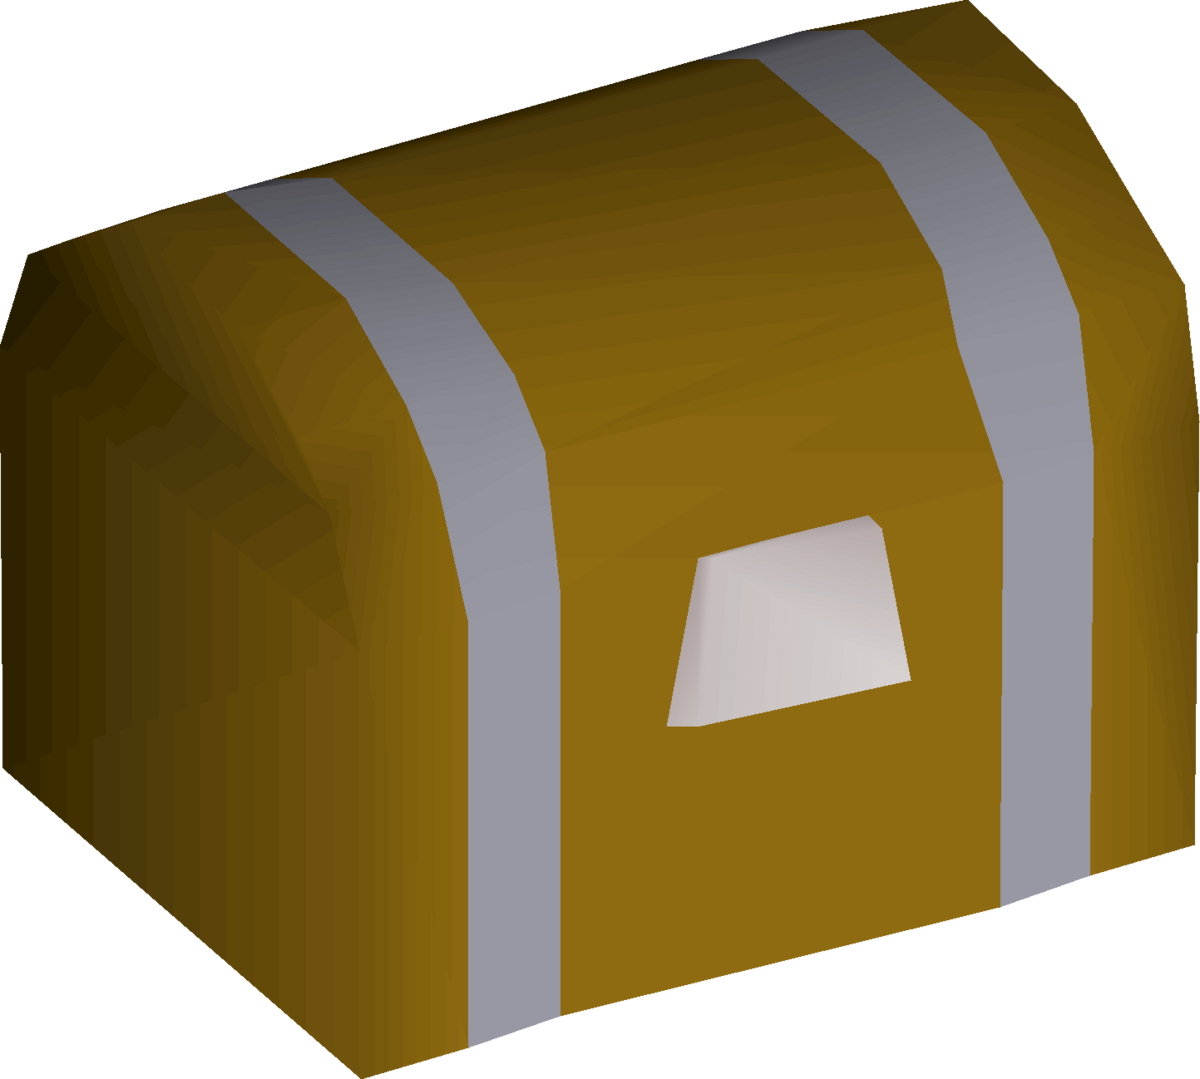 Reward Casket Beginner Osrs Wiki